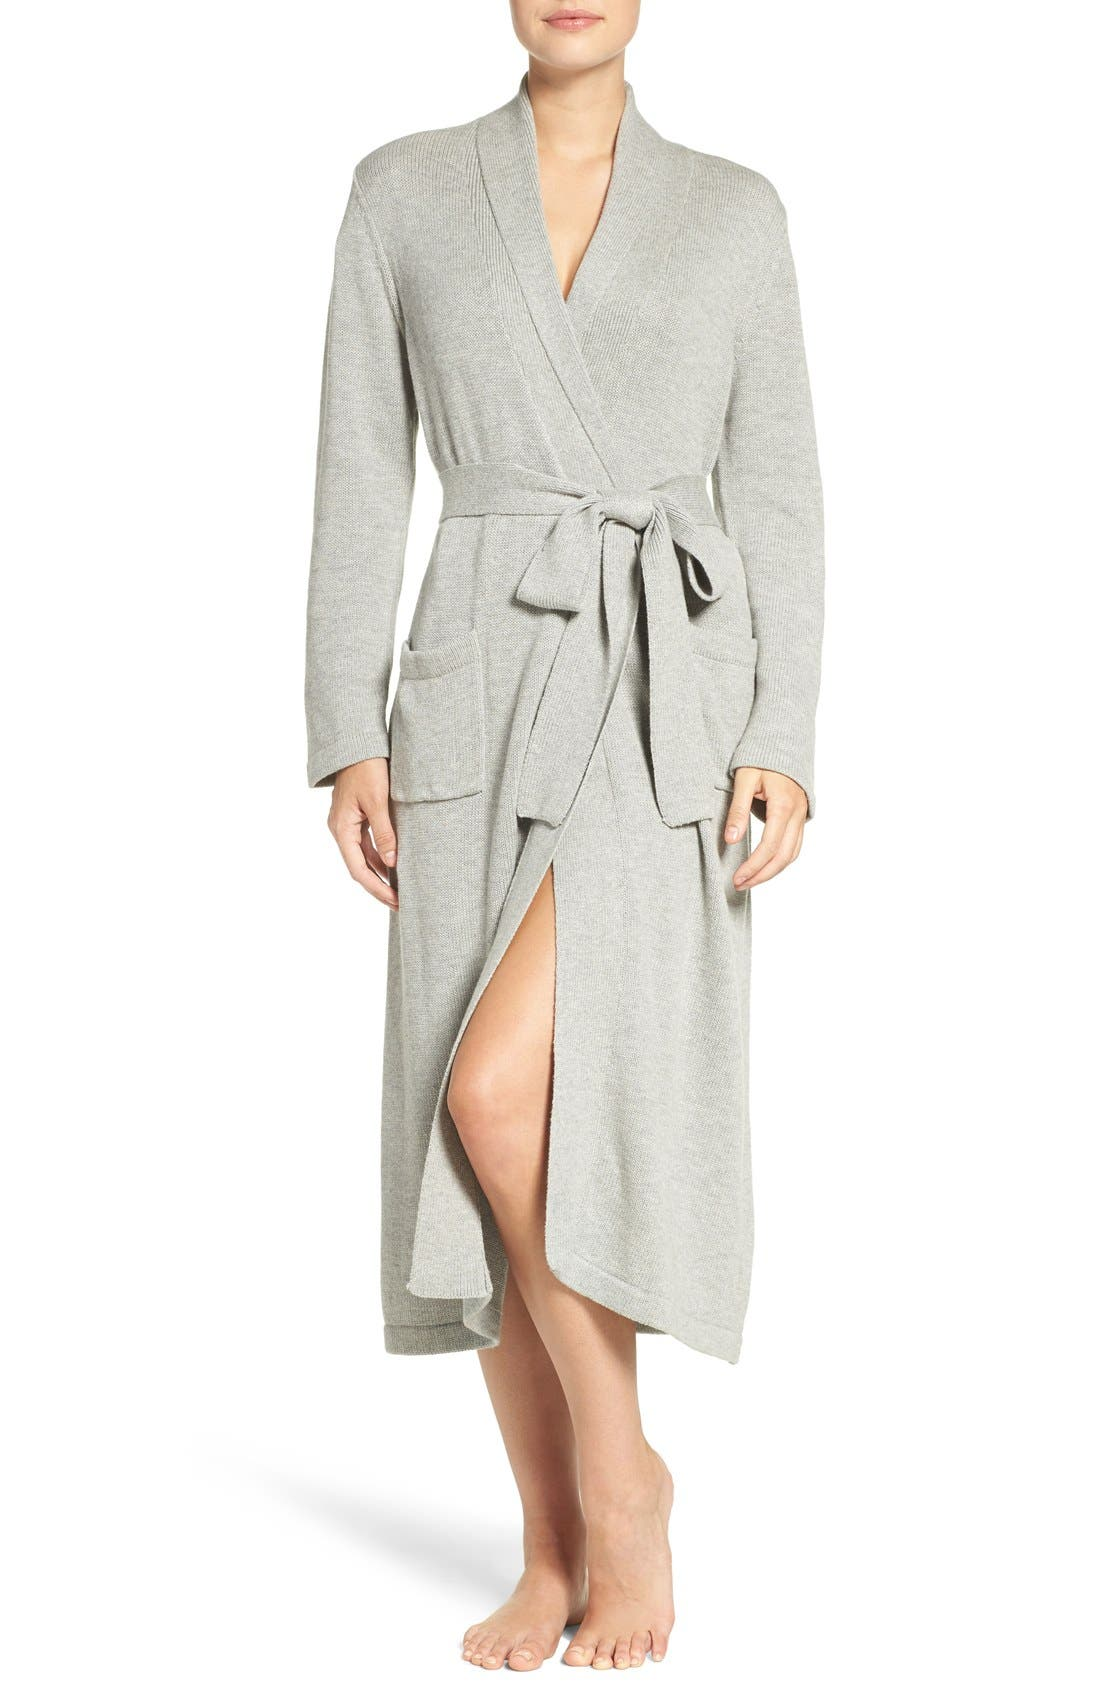 Alternate Image 1 Selected - Lauren Ralph Lauren 'Ballet' Knit Cotton Blend Robe